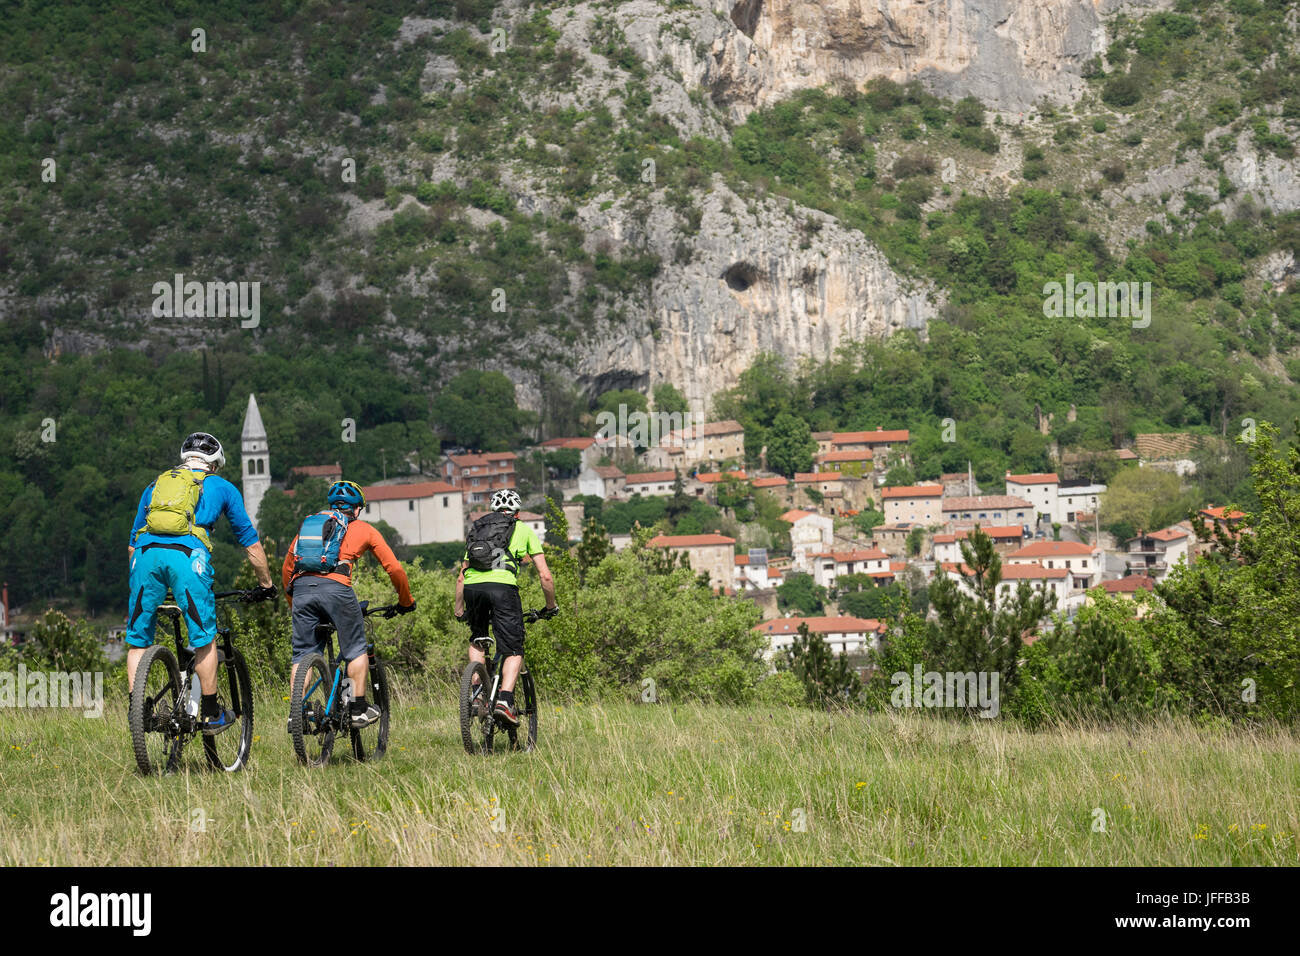 Mountain Biker riding cycle and overlooking houses by rocky mountain - Stock Image